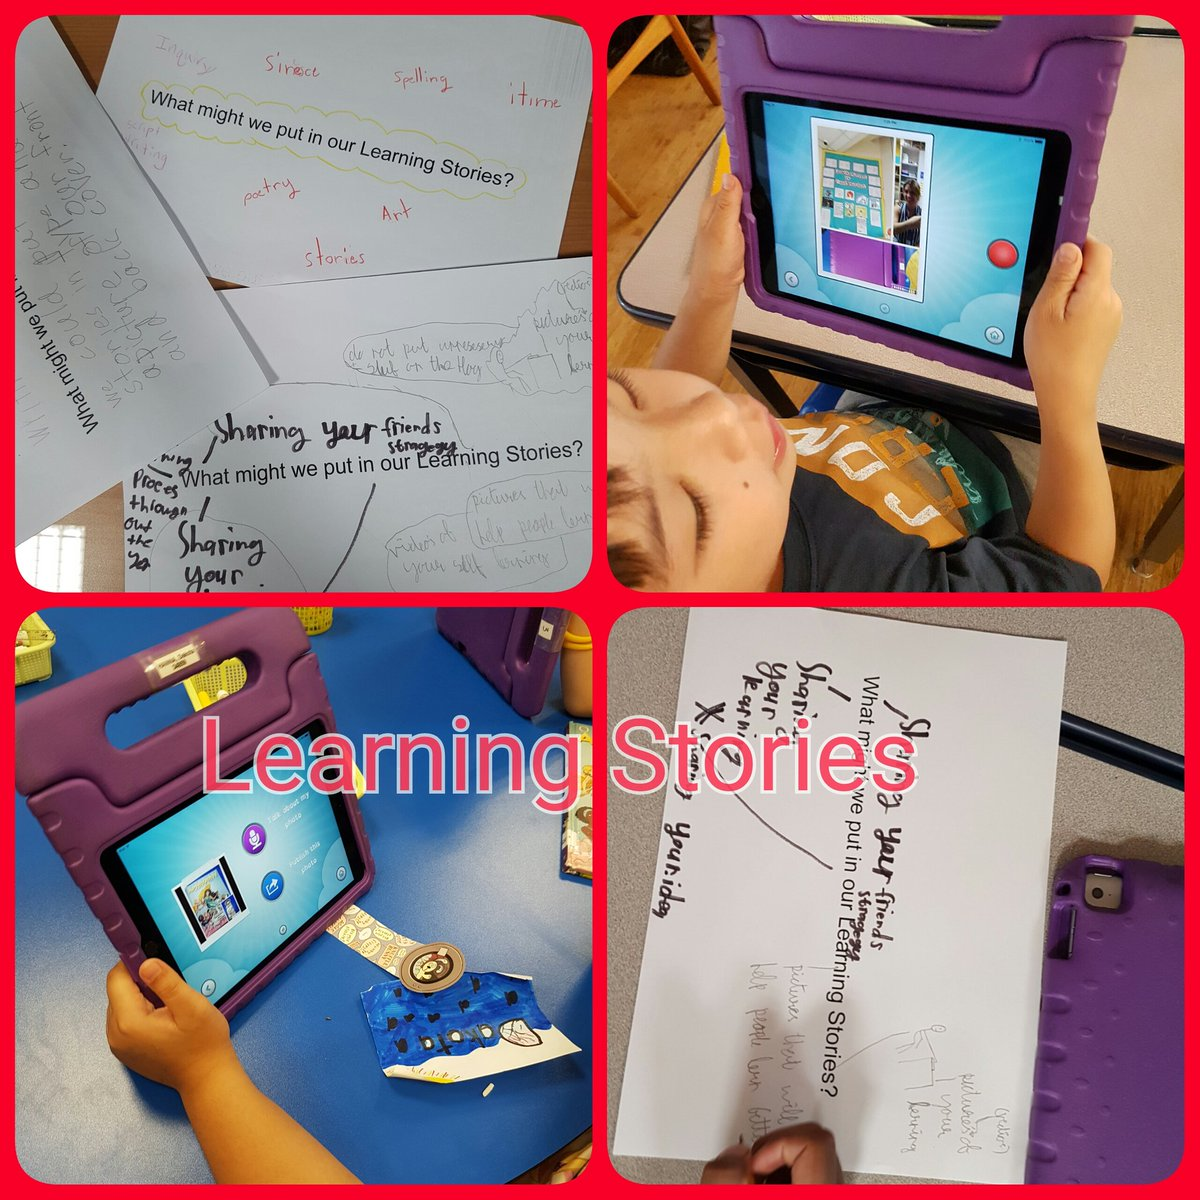 Grade 3s first attempt at what a Learning Story might look like using Piccollage and Easyblog @JISElementary https://t.co/eF1kpJKdPJ